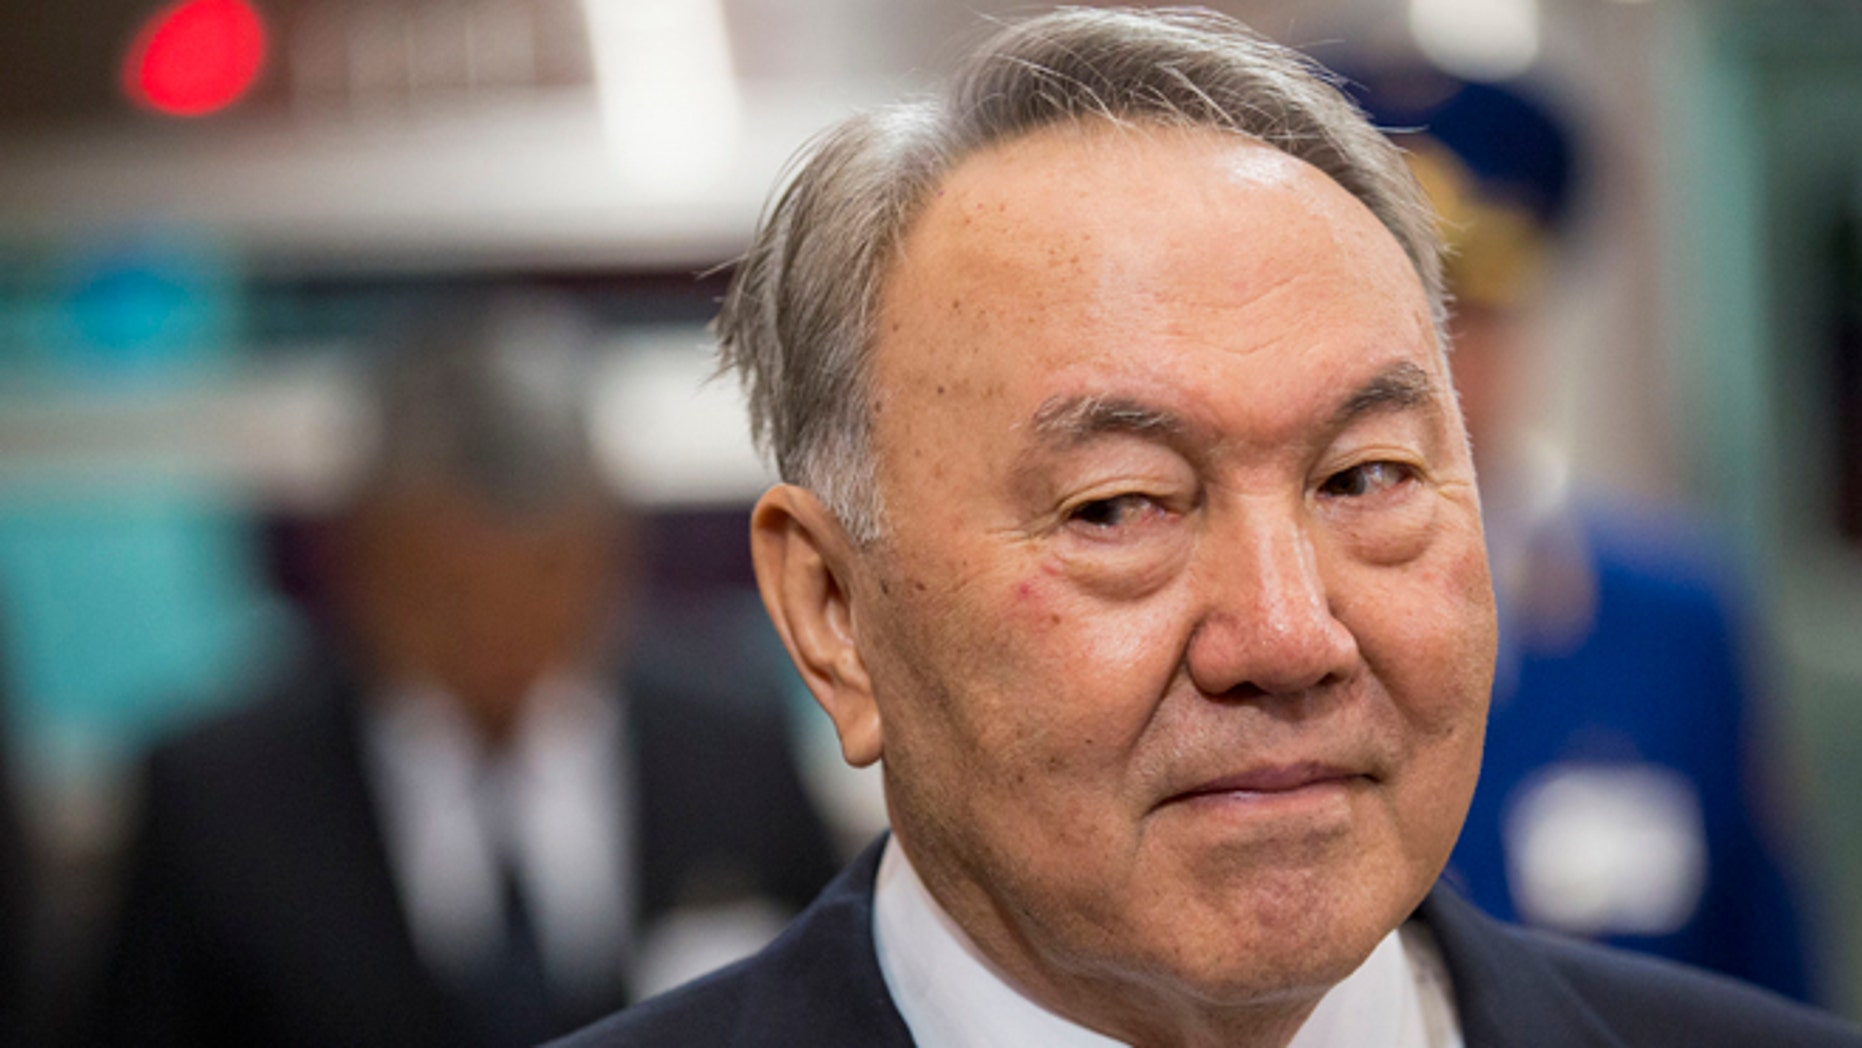 April 18, 2015: Kazakhstan President Nursultan Nazarbayev is seen in Almaty, Kazakhstan.